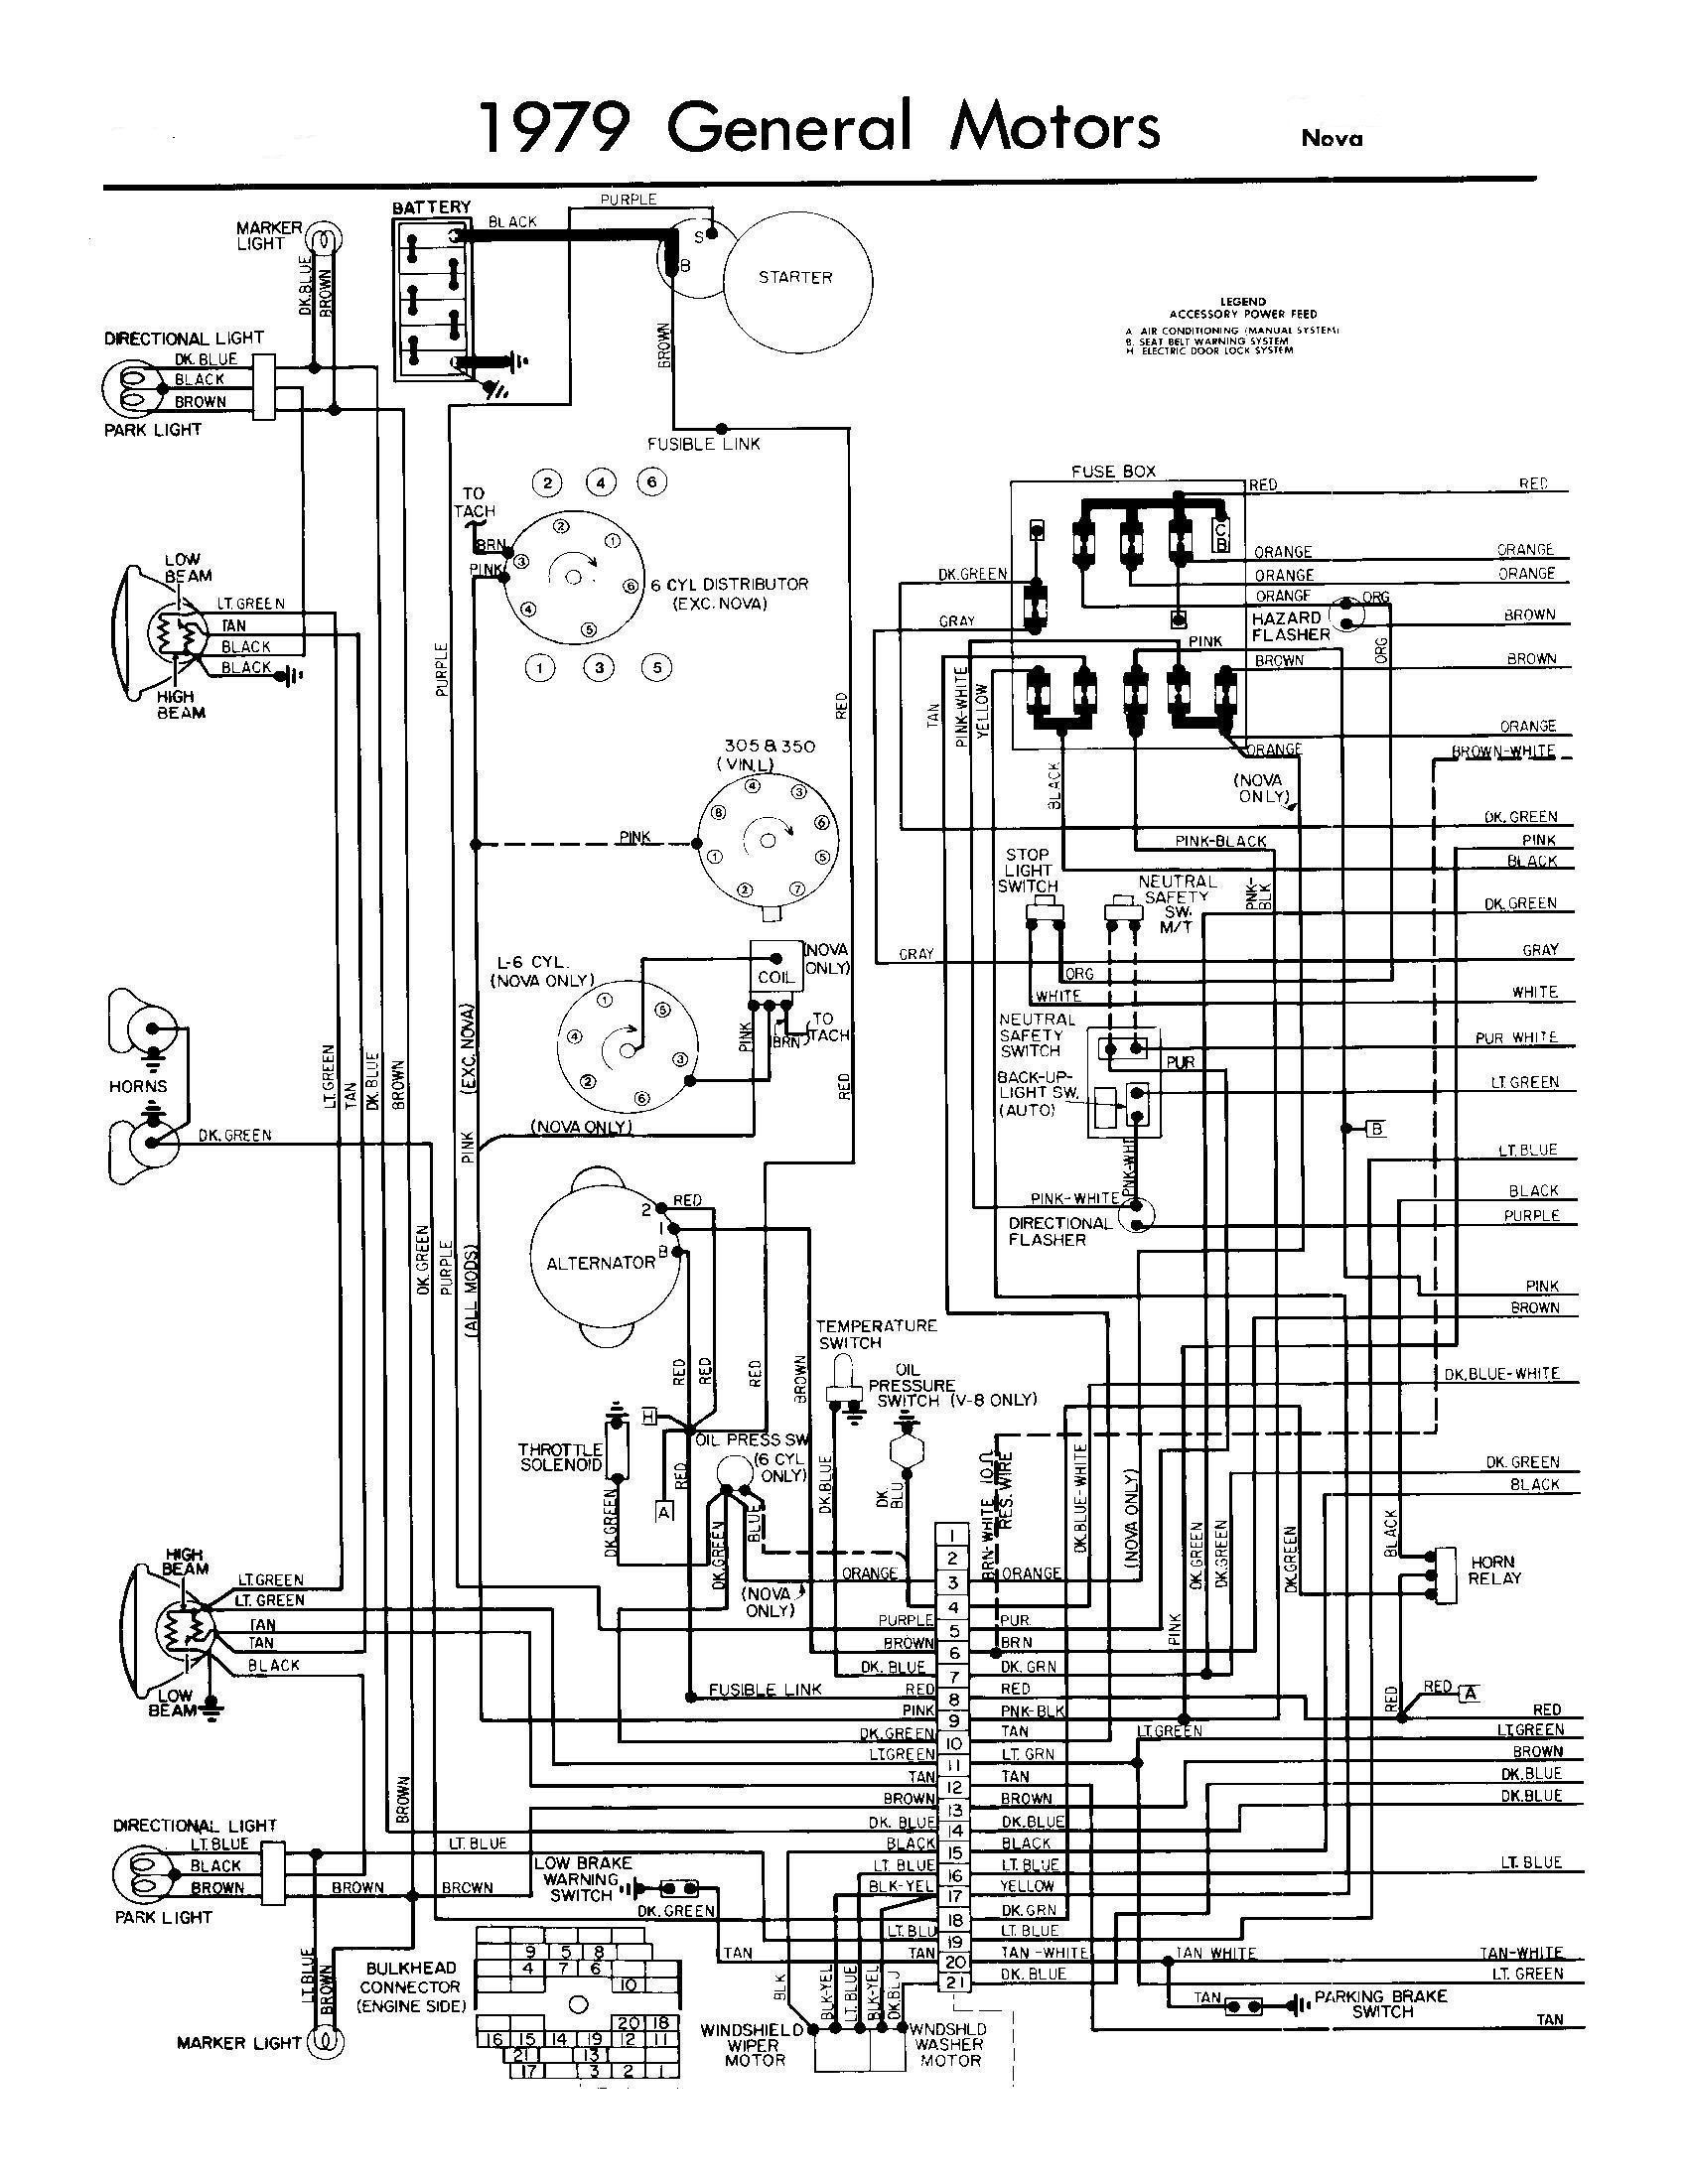 Wiring Diagram For 1959 Chevy Truck Wiring Diagram Teach Teach Lechicchedimammavale It